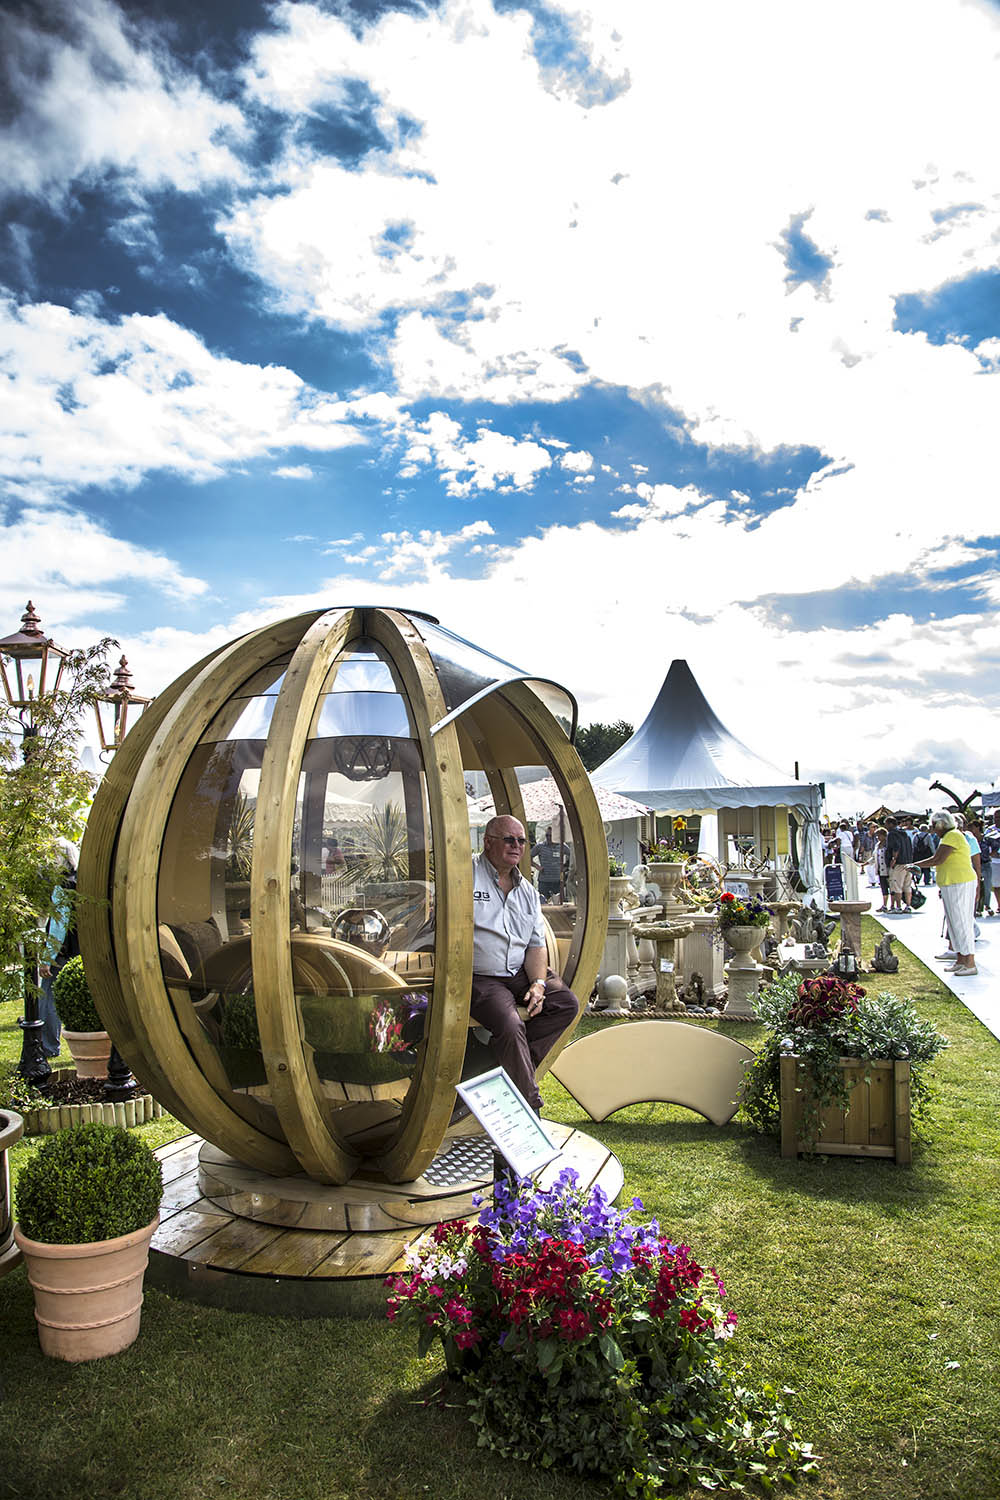 RHS Flower Show Tatton Park 2013